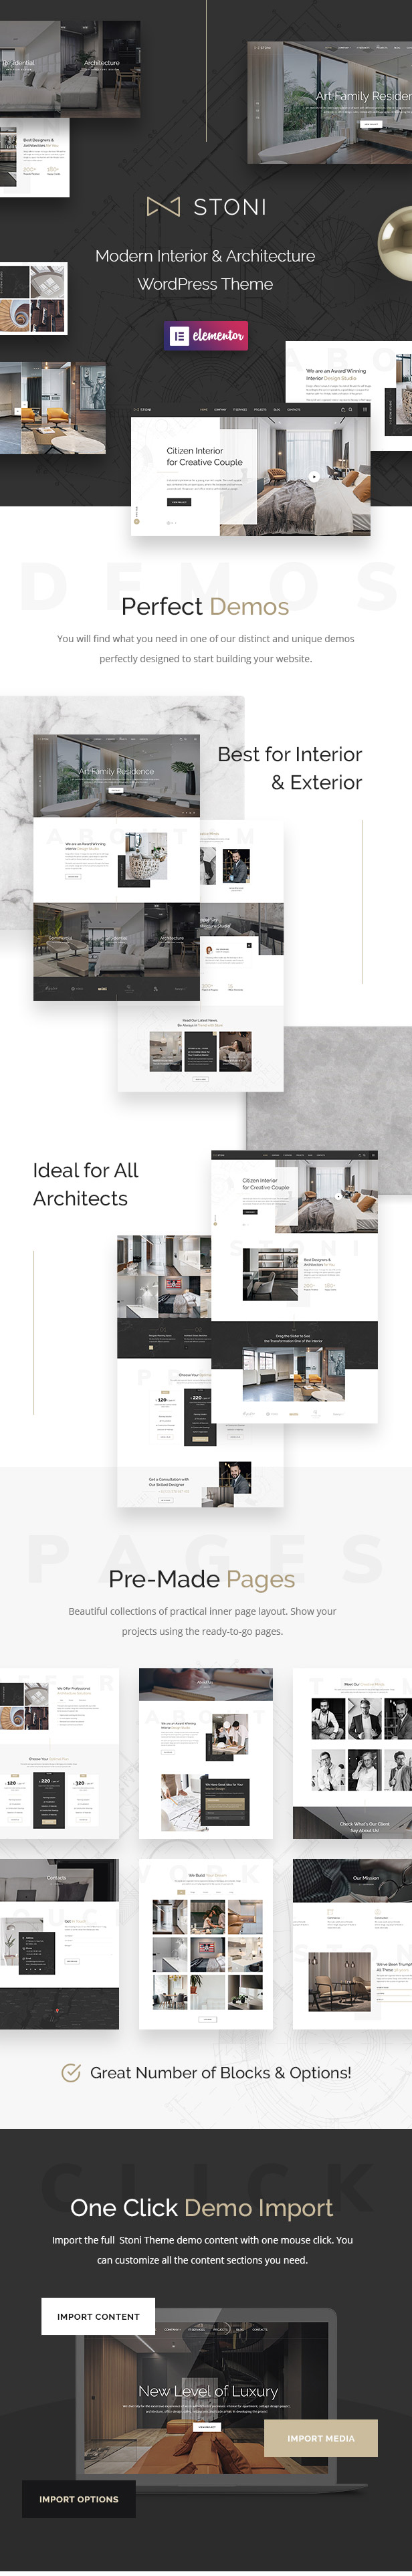 Stoni - Architecture Agency WordPress Theme - 2